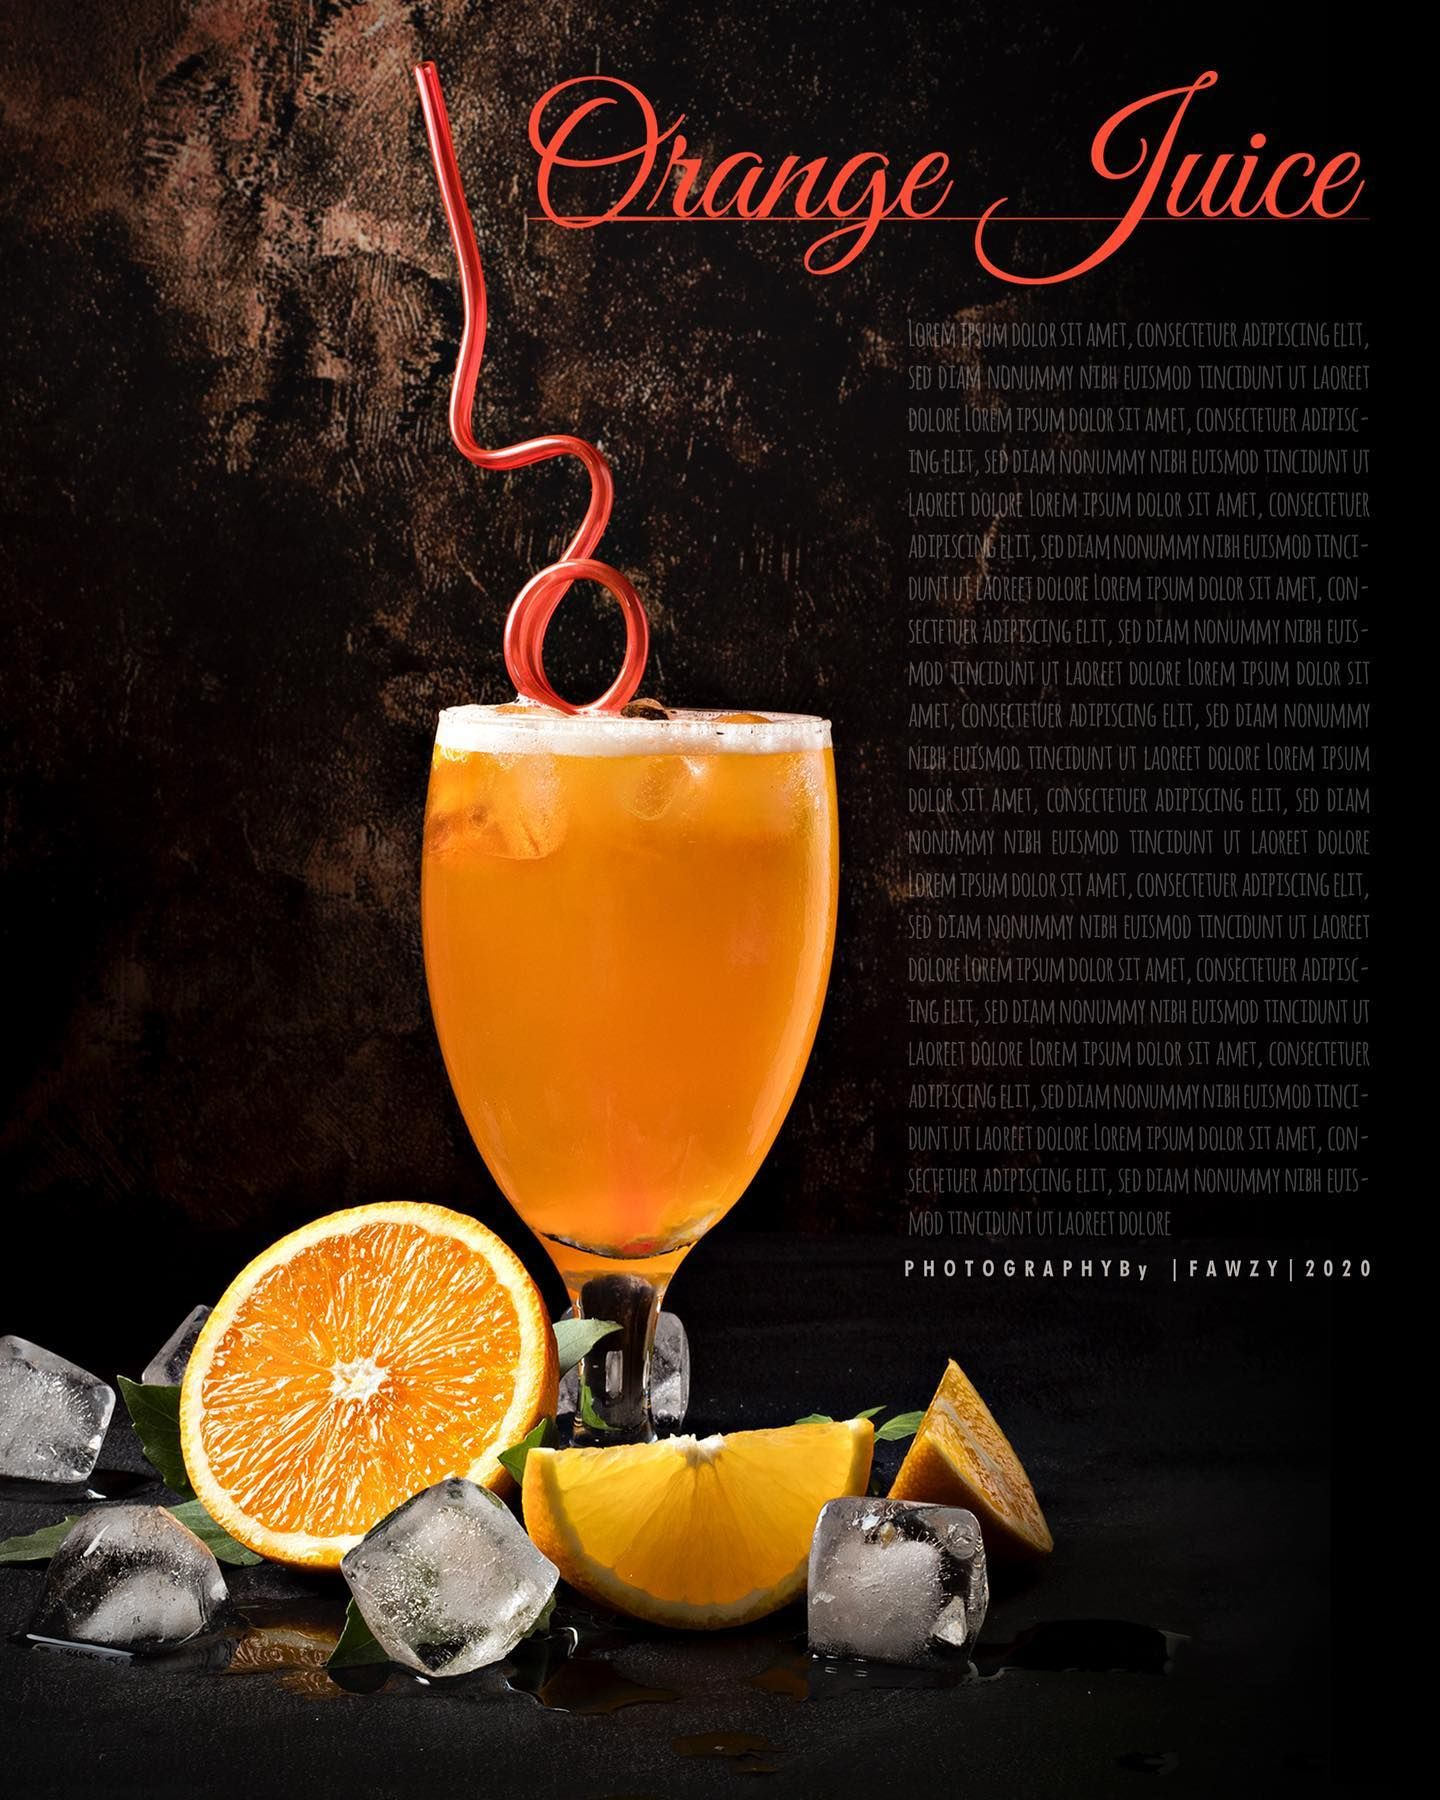 Pin By Food Photography On تصوير فوتغرافي In 2020 Alcoholic Drinks Wall Paper Phone Food